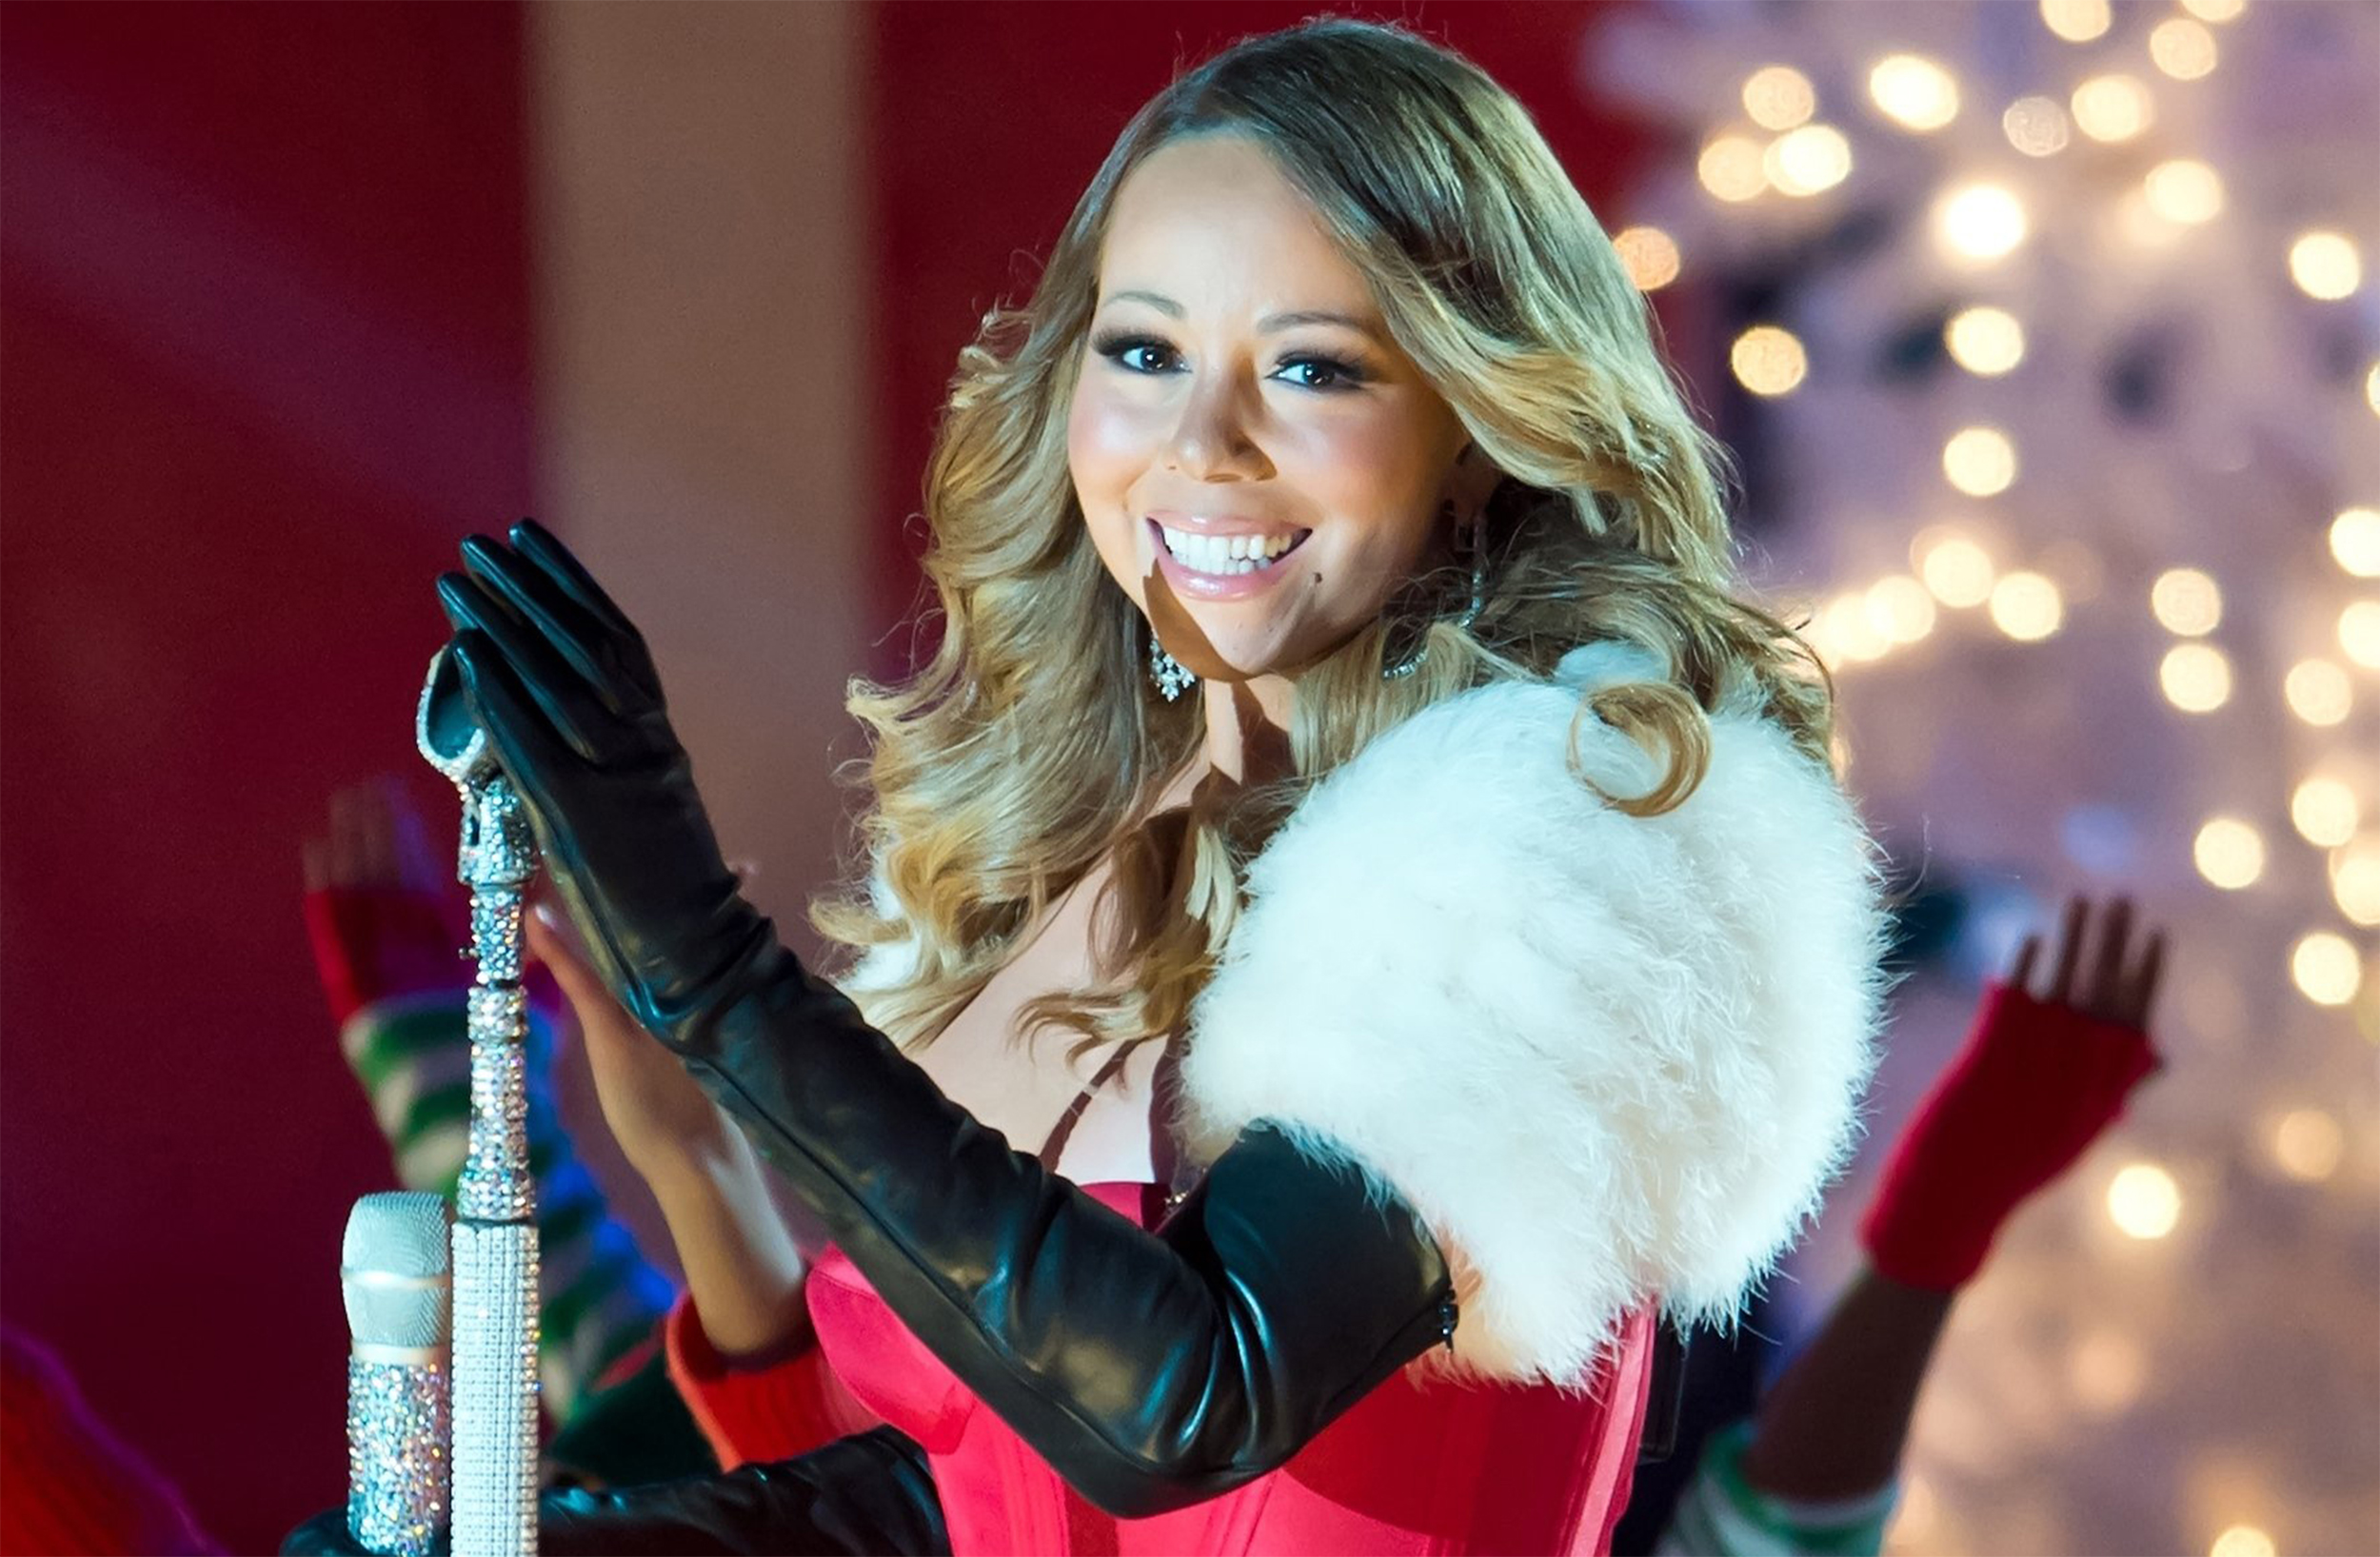 Lyrics All I Want For Christmas.Mariah Carey S All I Want For Christmas Is You Is The Best